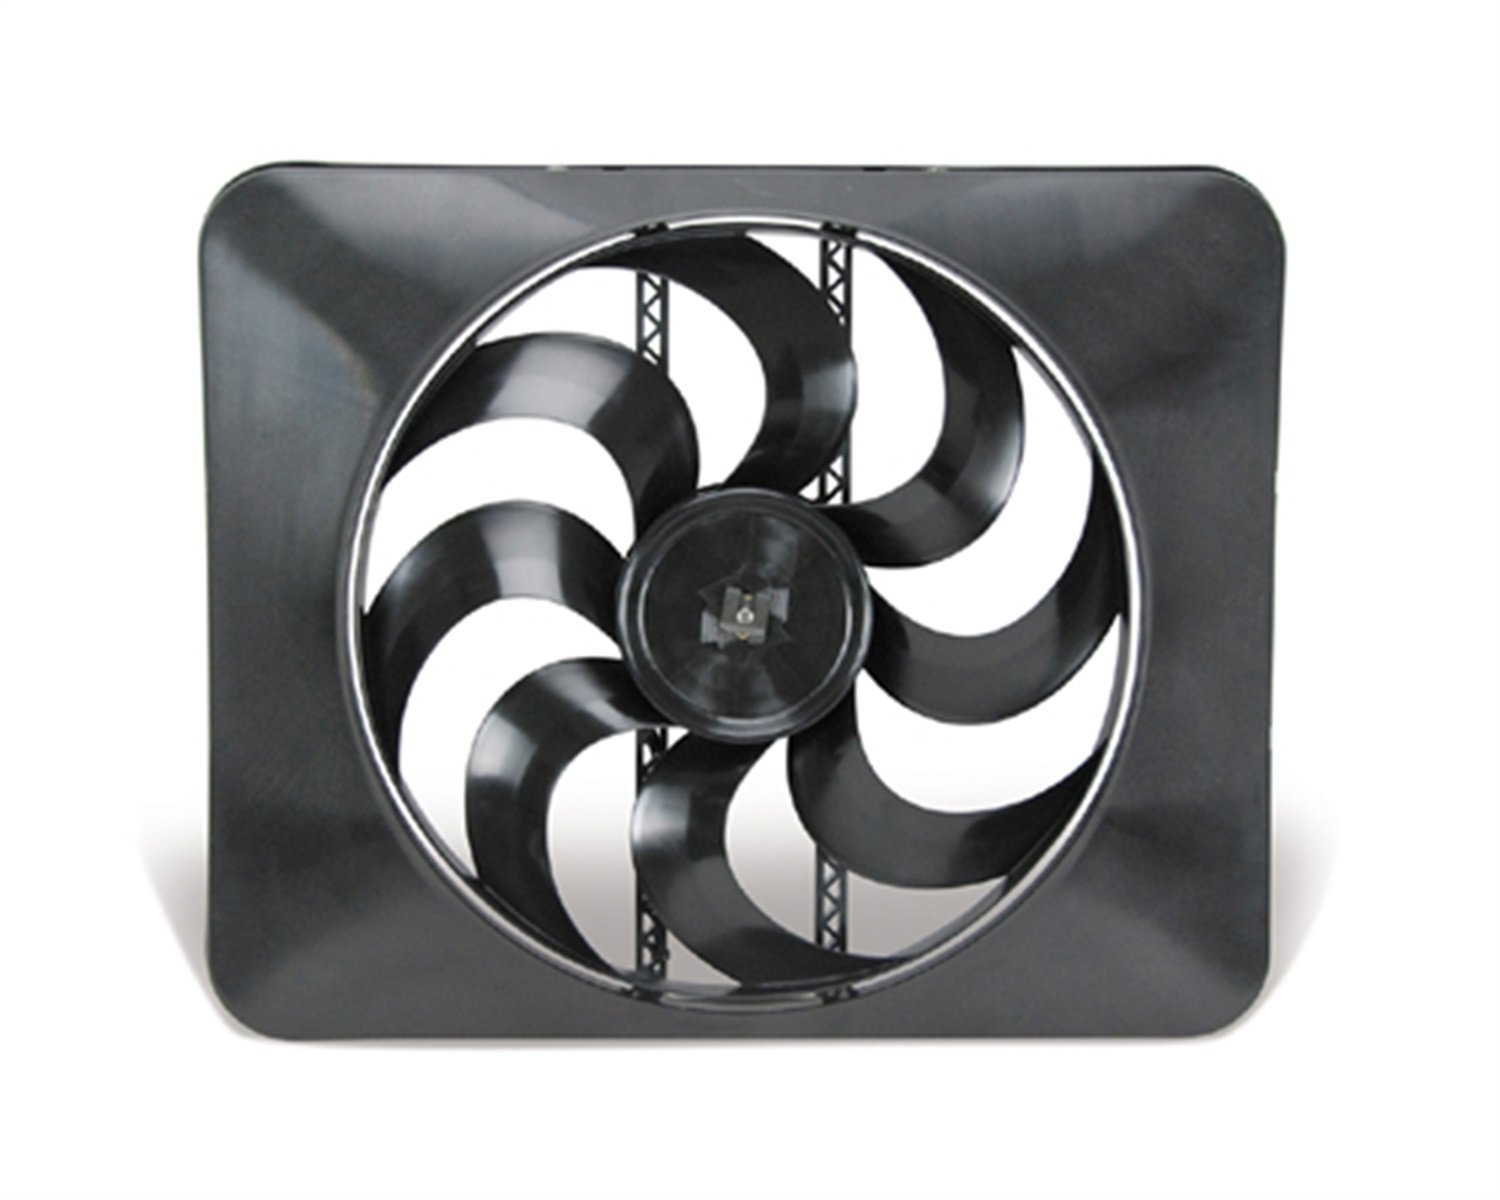 Flex-a-lite 188 Black Magic Xtreme Black 15 Fan